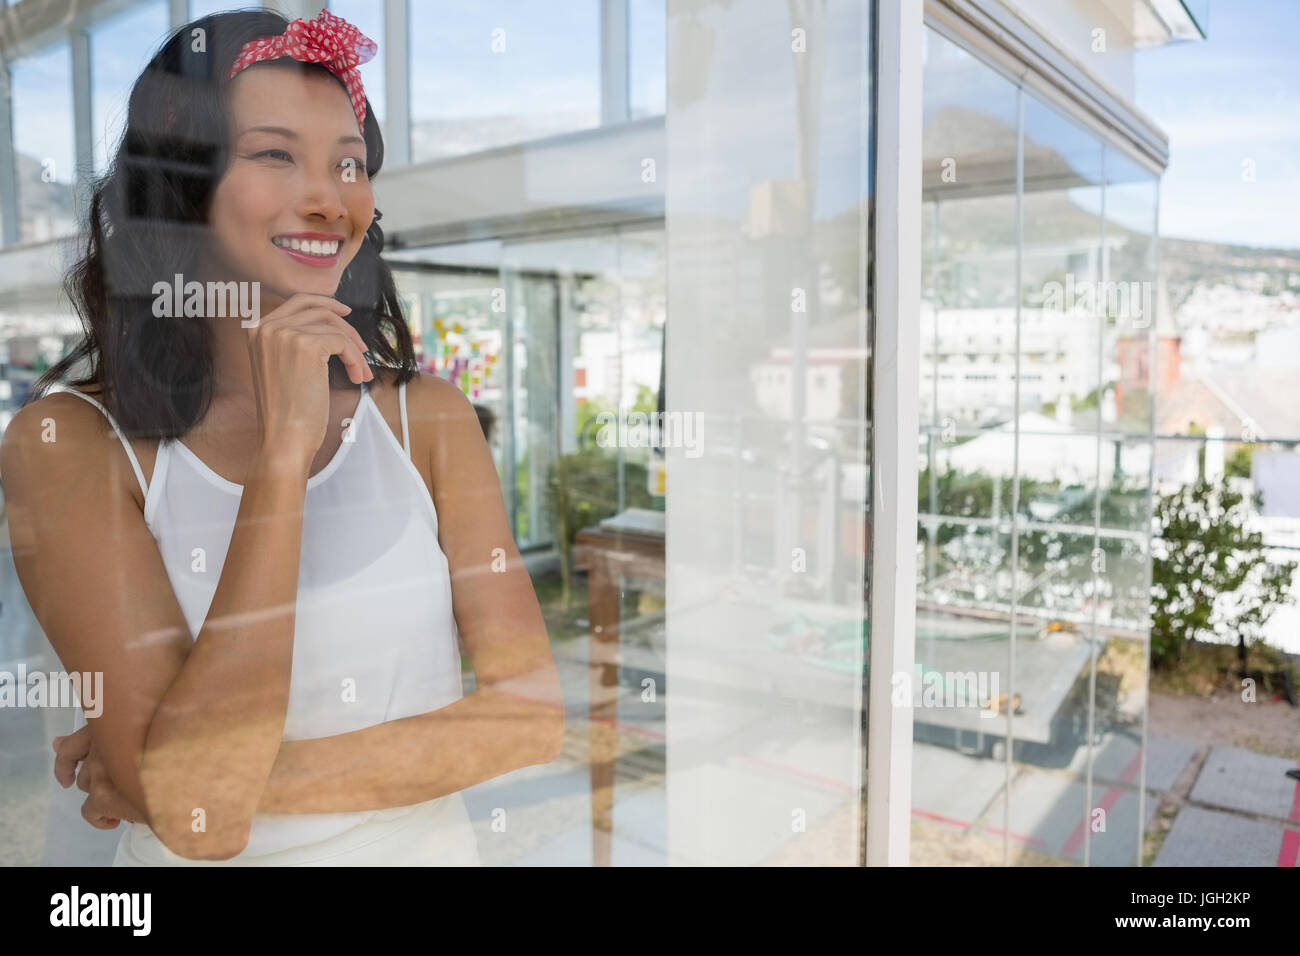 Smiling thoughtful businesswoman looking through window seen through glass - Stock Image